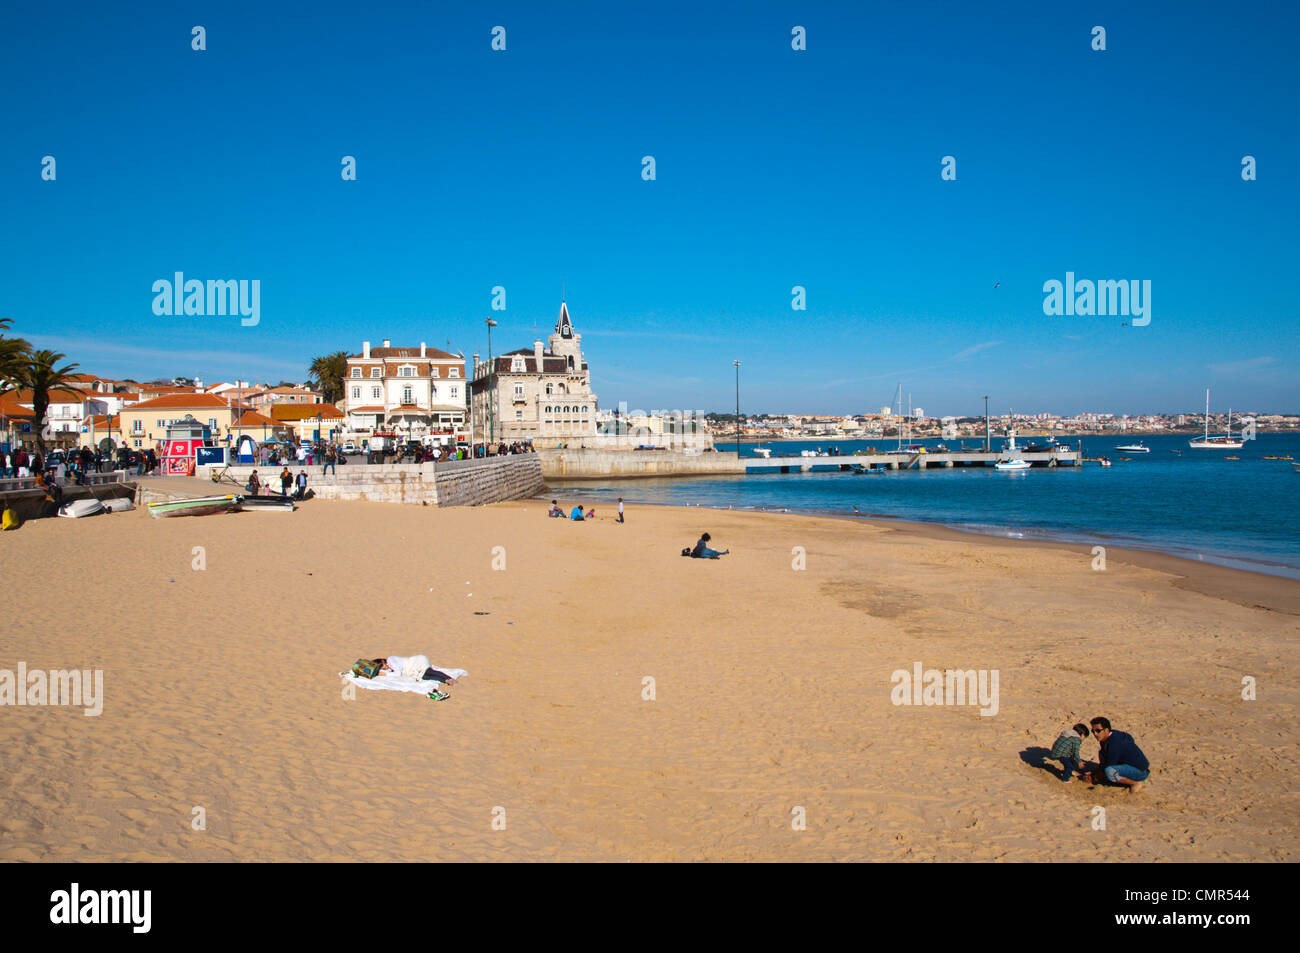 Praia de Ribeira beach Cascais coastal resort near Lisbon Portugal Europe - Stock Image